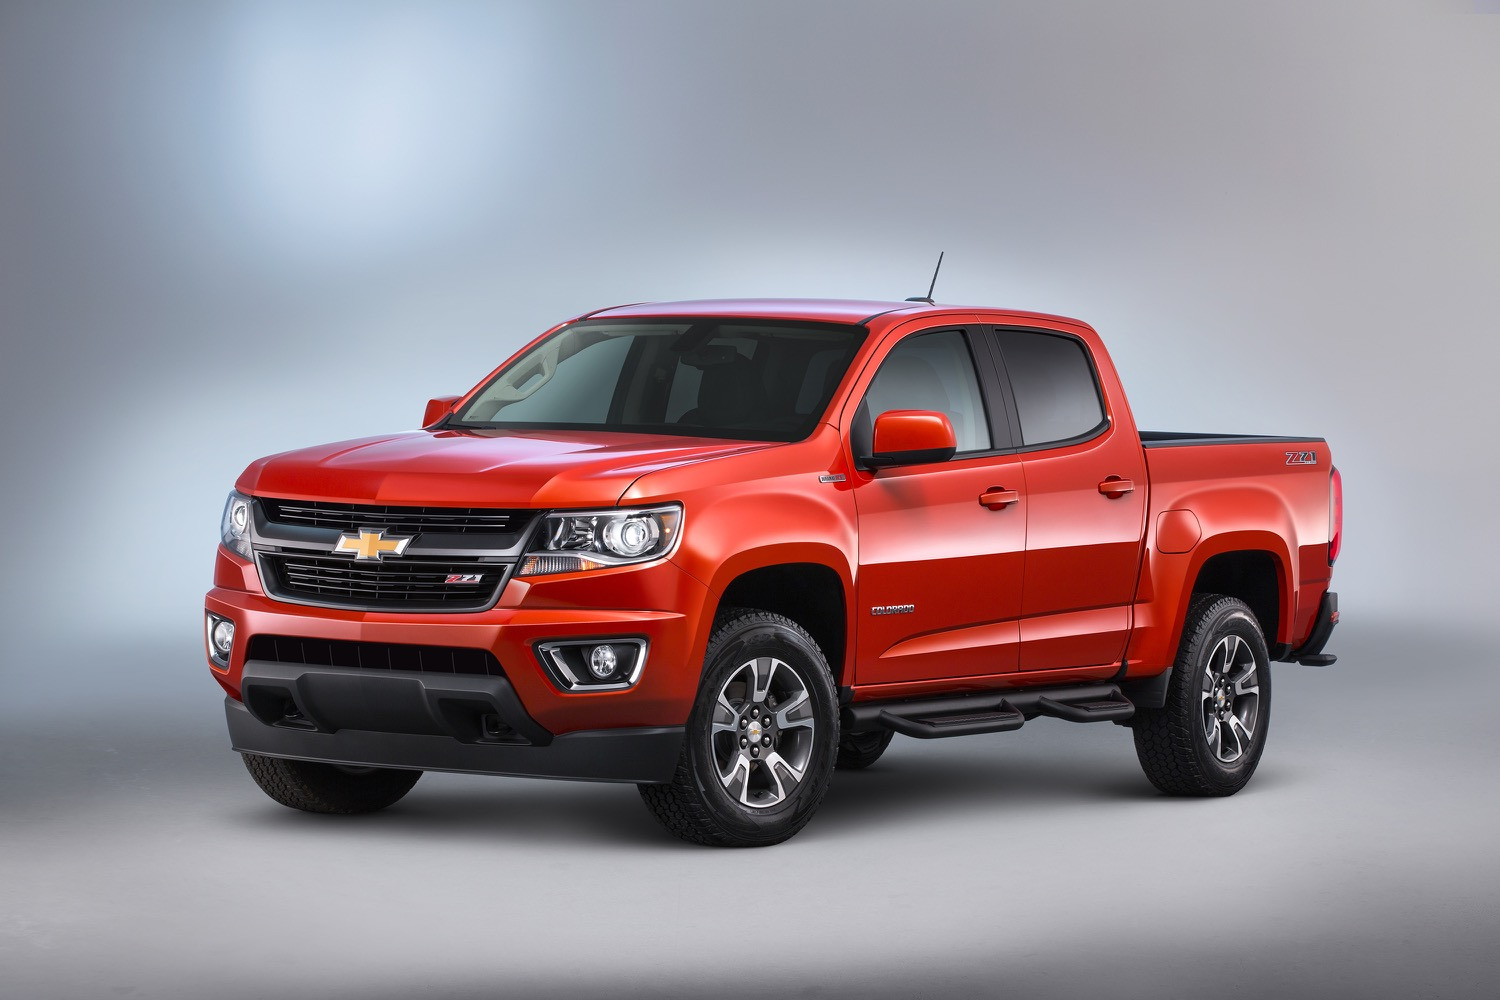 2016 chevrolet colorado chevy gas mileage the car. Black Bedroom Furniture Sets. Home Design Ideas